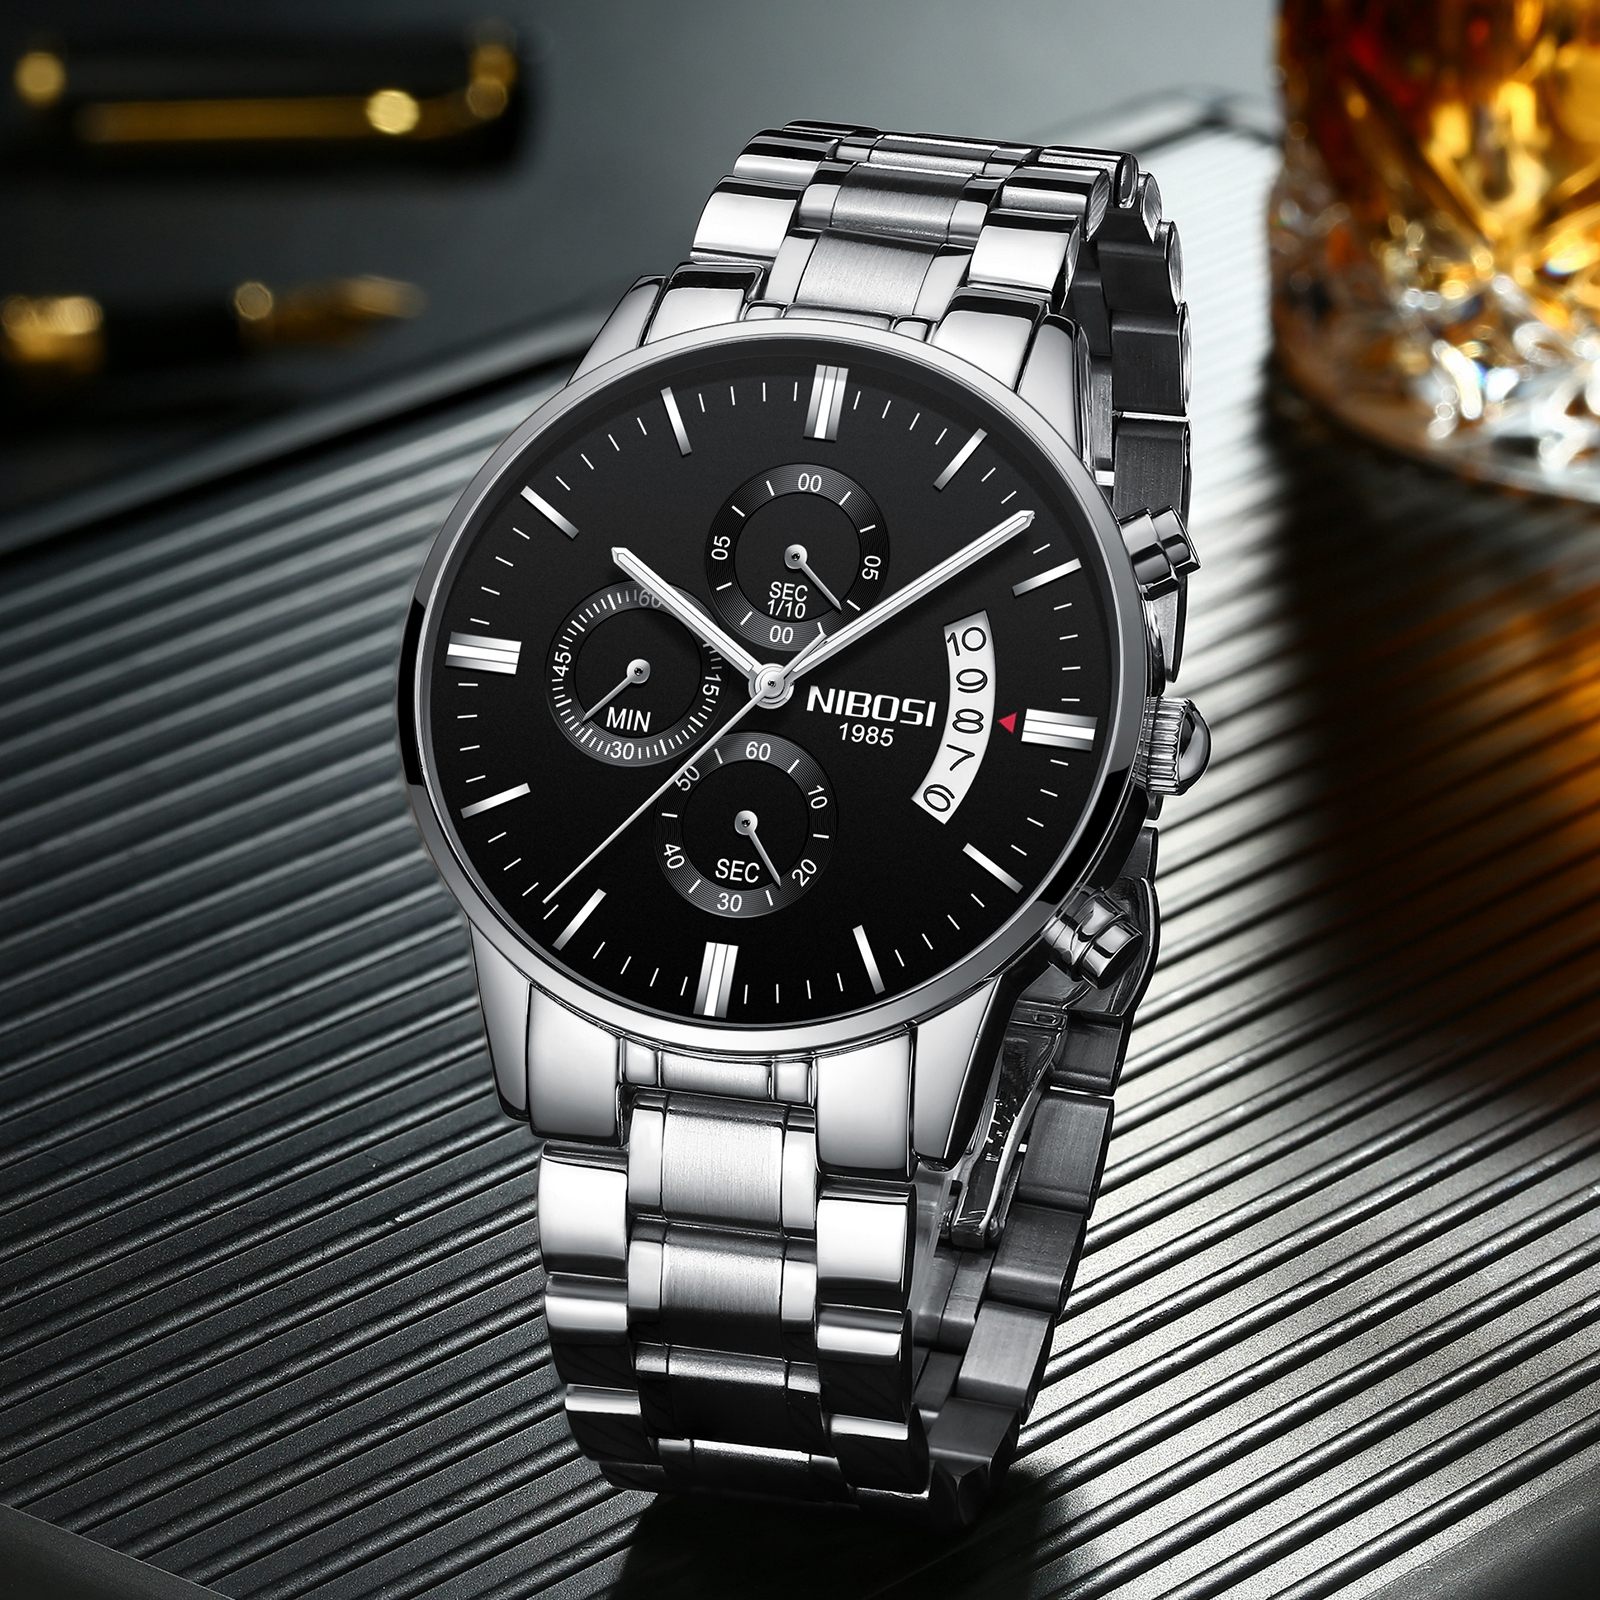 Image 4 - NIBOSI Relogio Masculino Men Watches Top Brand Luxury Famous Men's Fashion Casual Dress Watch Military Quartz Wristwatches Saat-in Quartz Watches from Watches